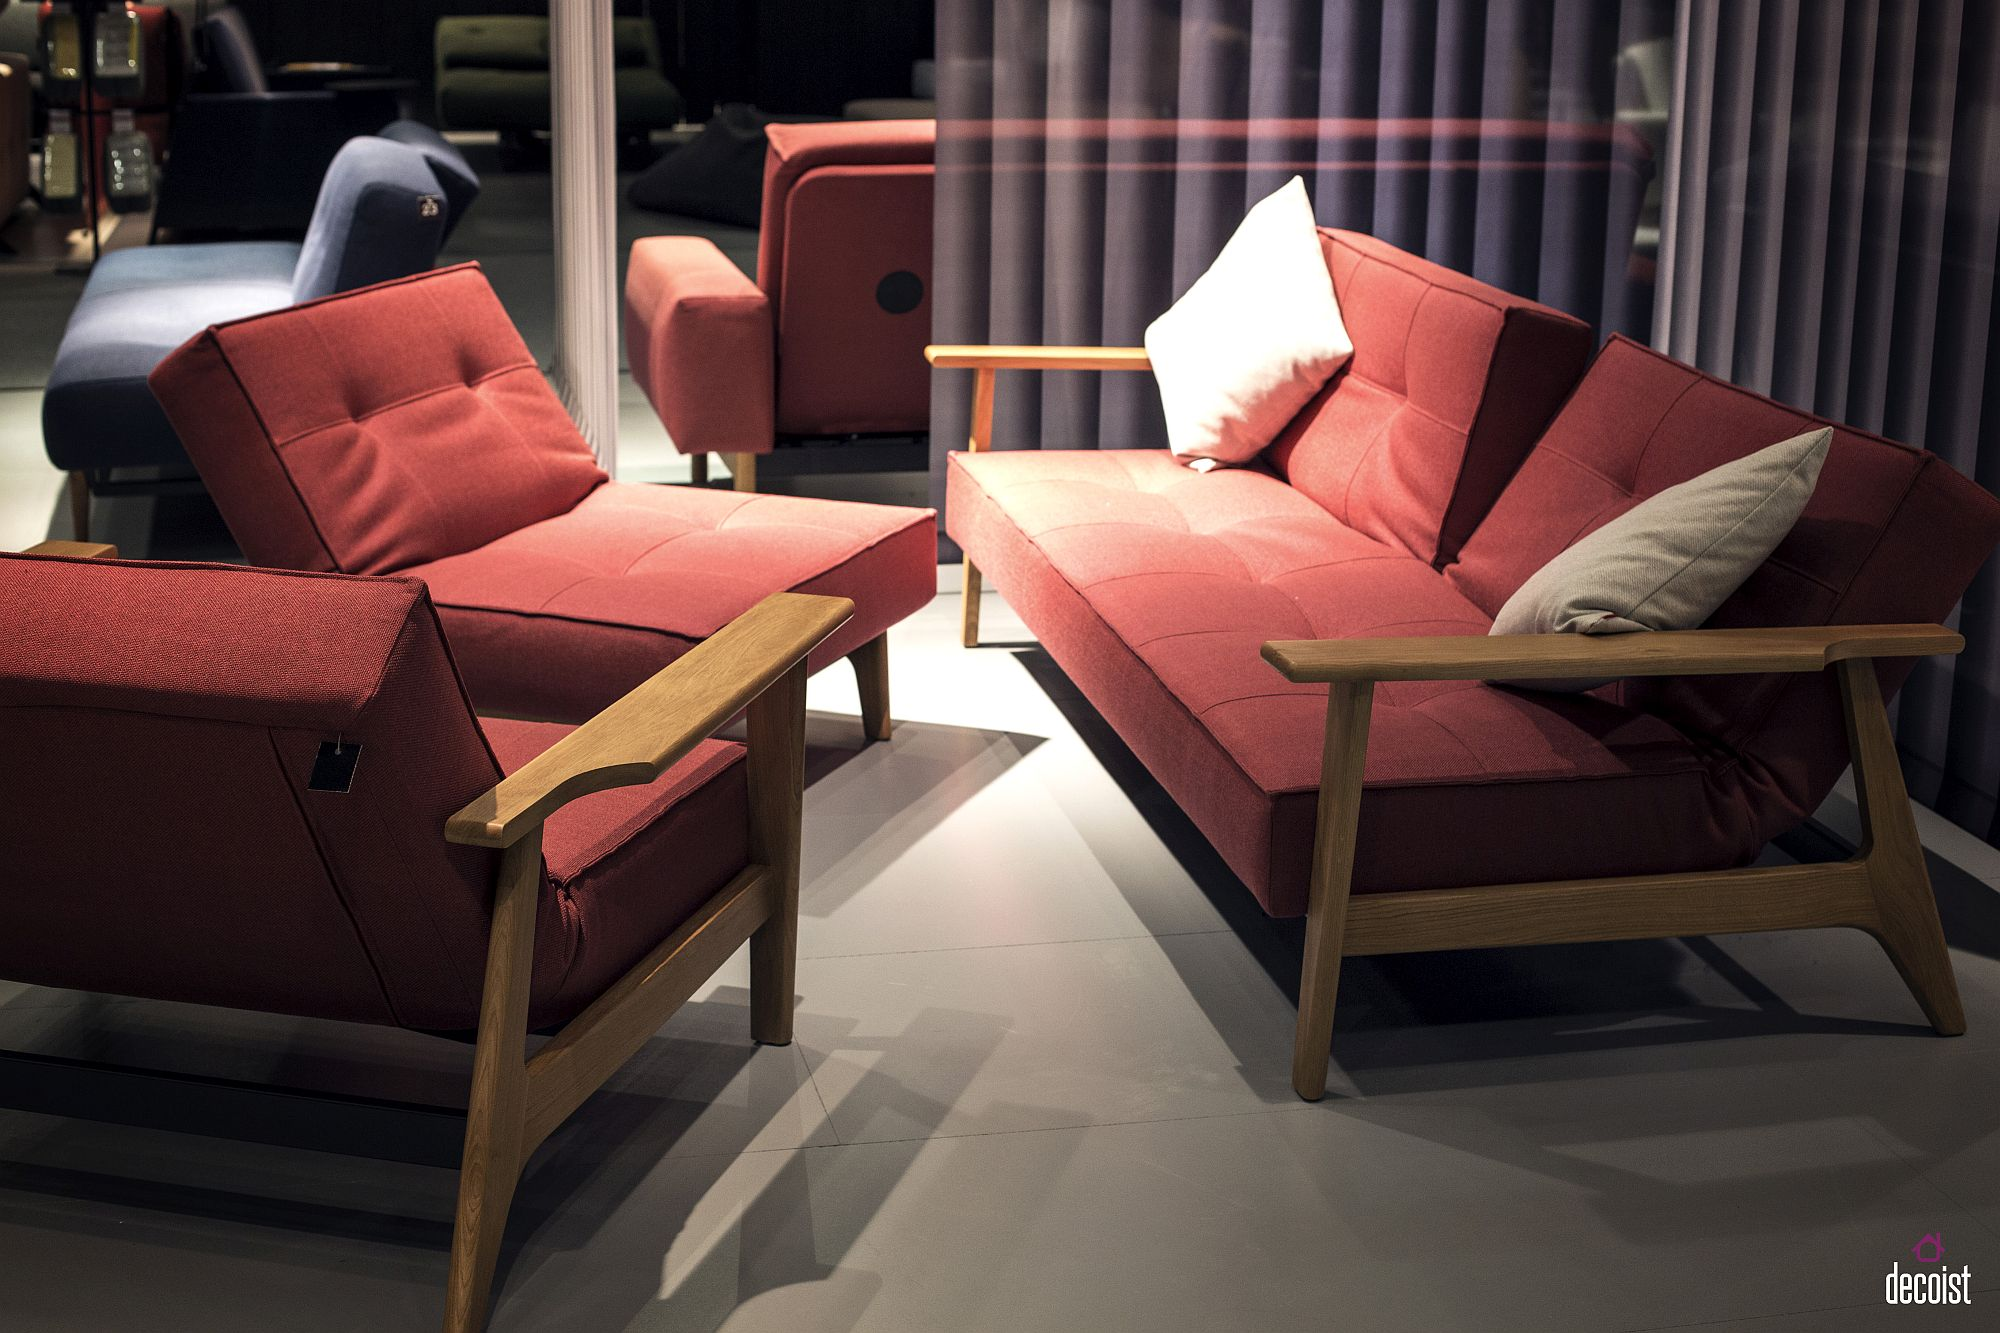 Smart nordic design allows the trendy couch to fit into contemporary space